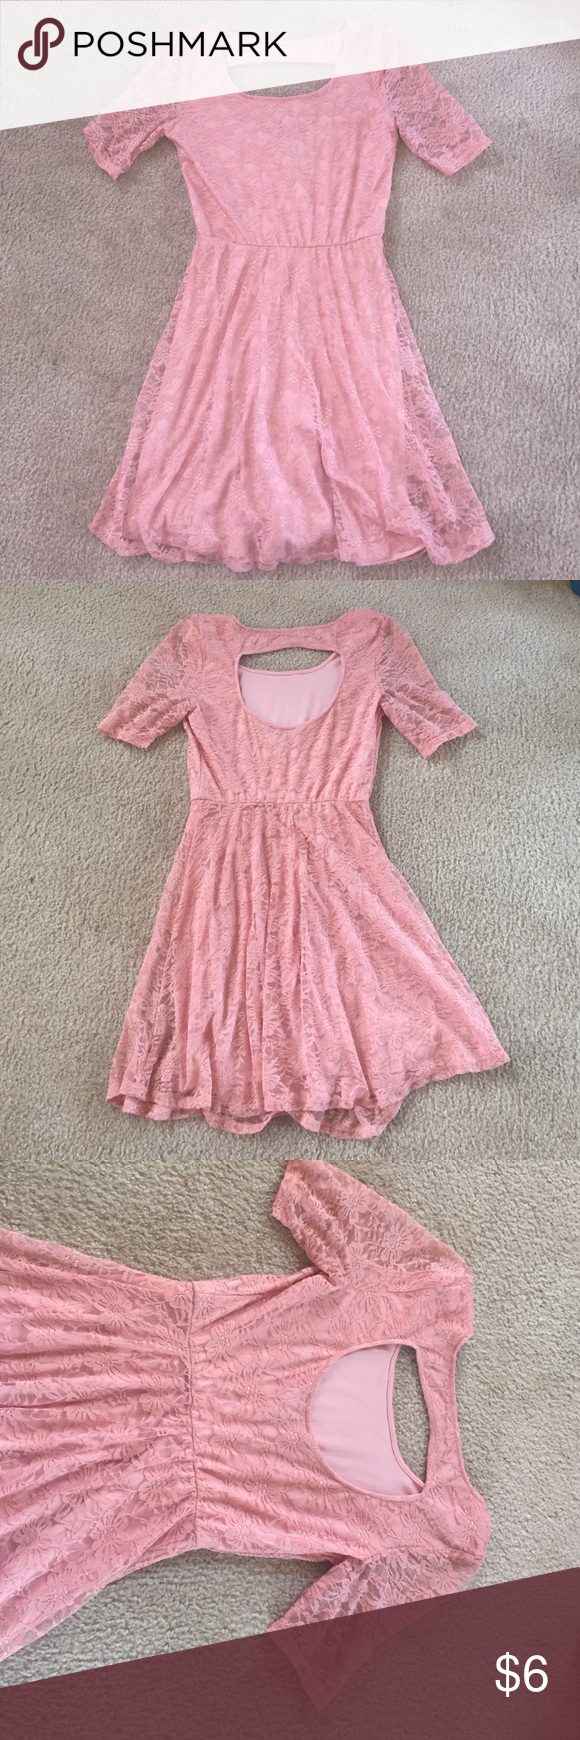 Pink see through lace dress  pink casual lace dress Blush pink lace dress used but still in good